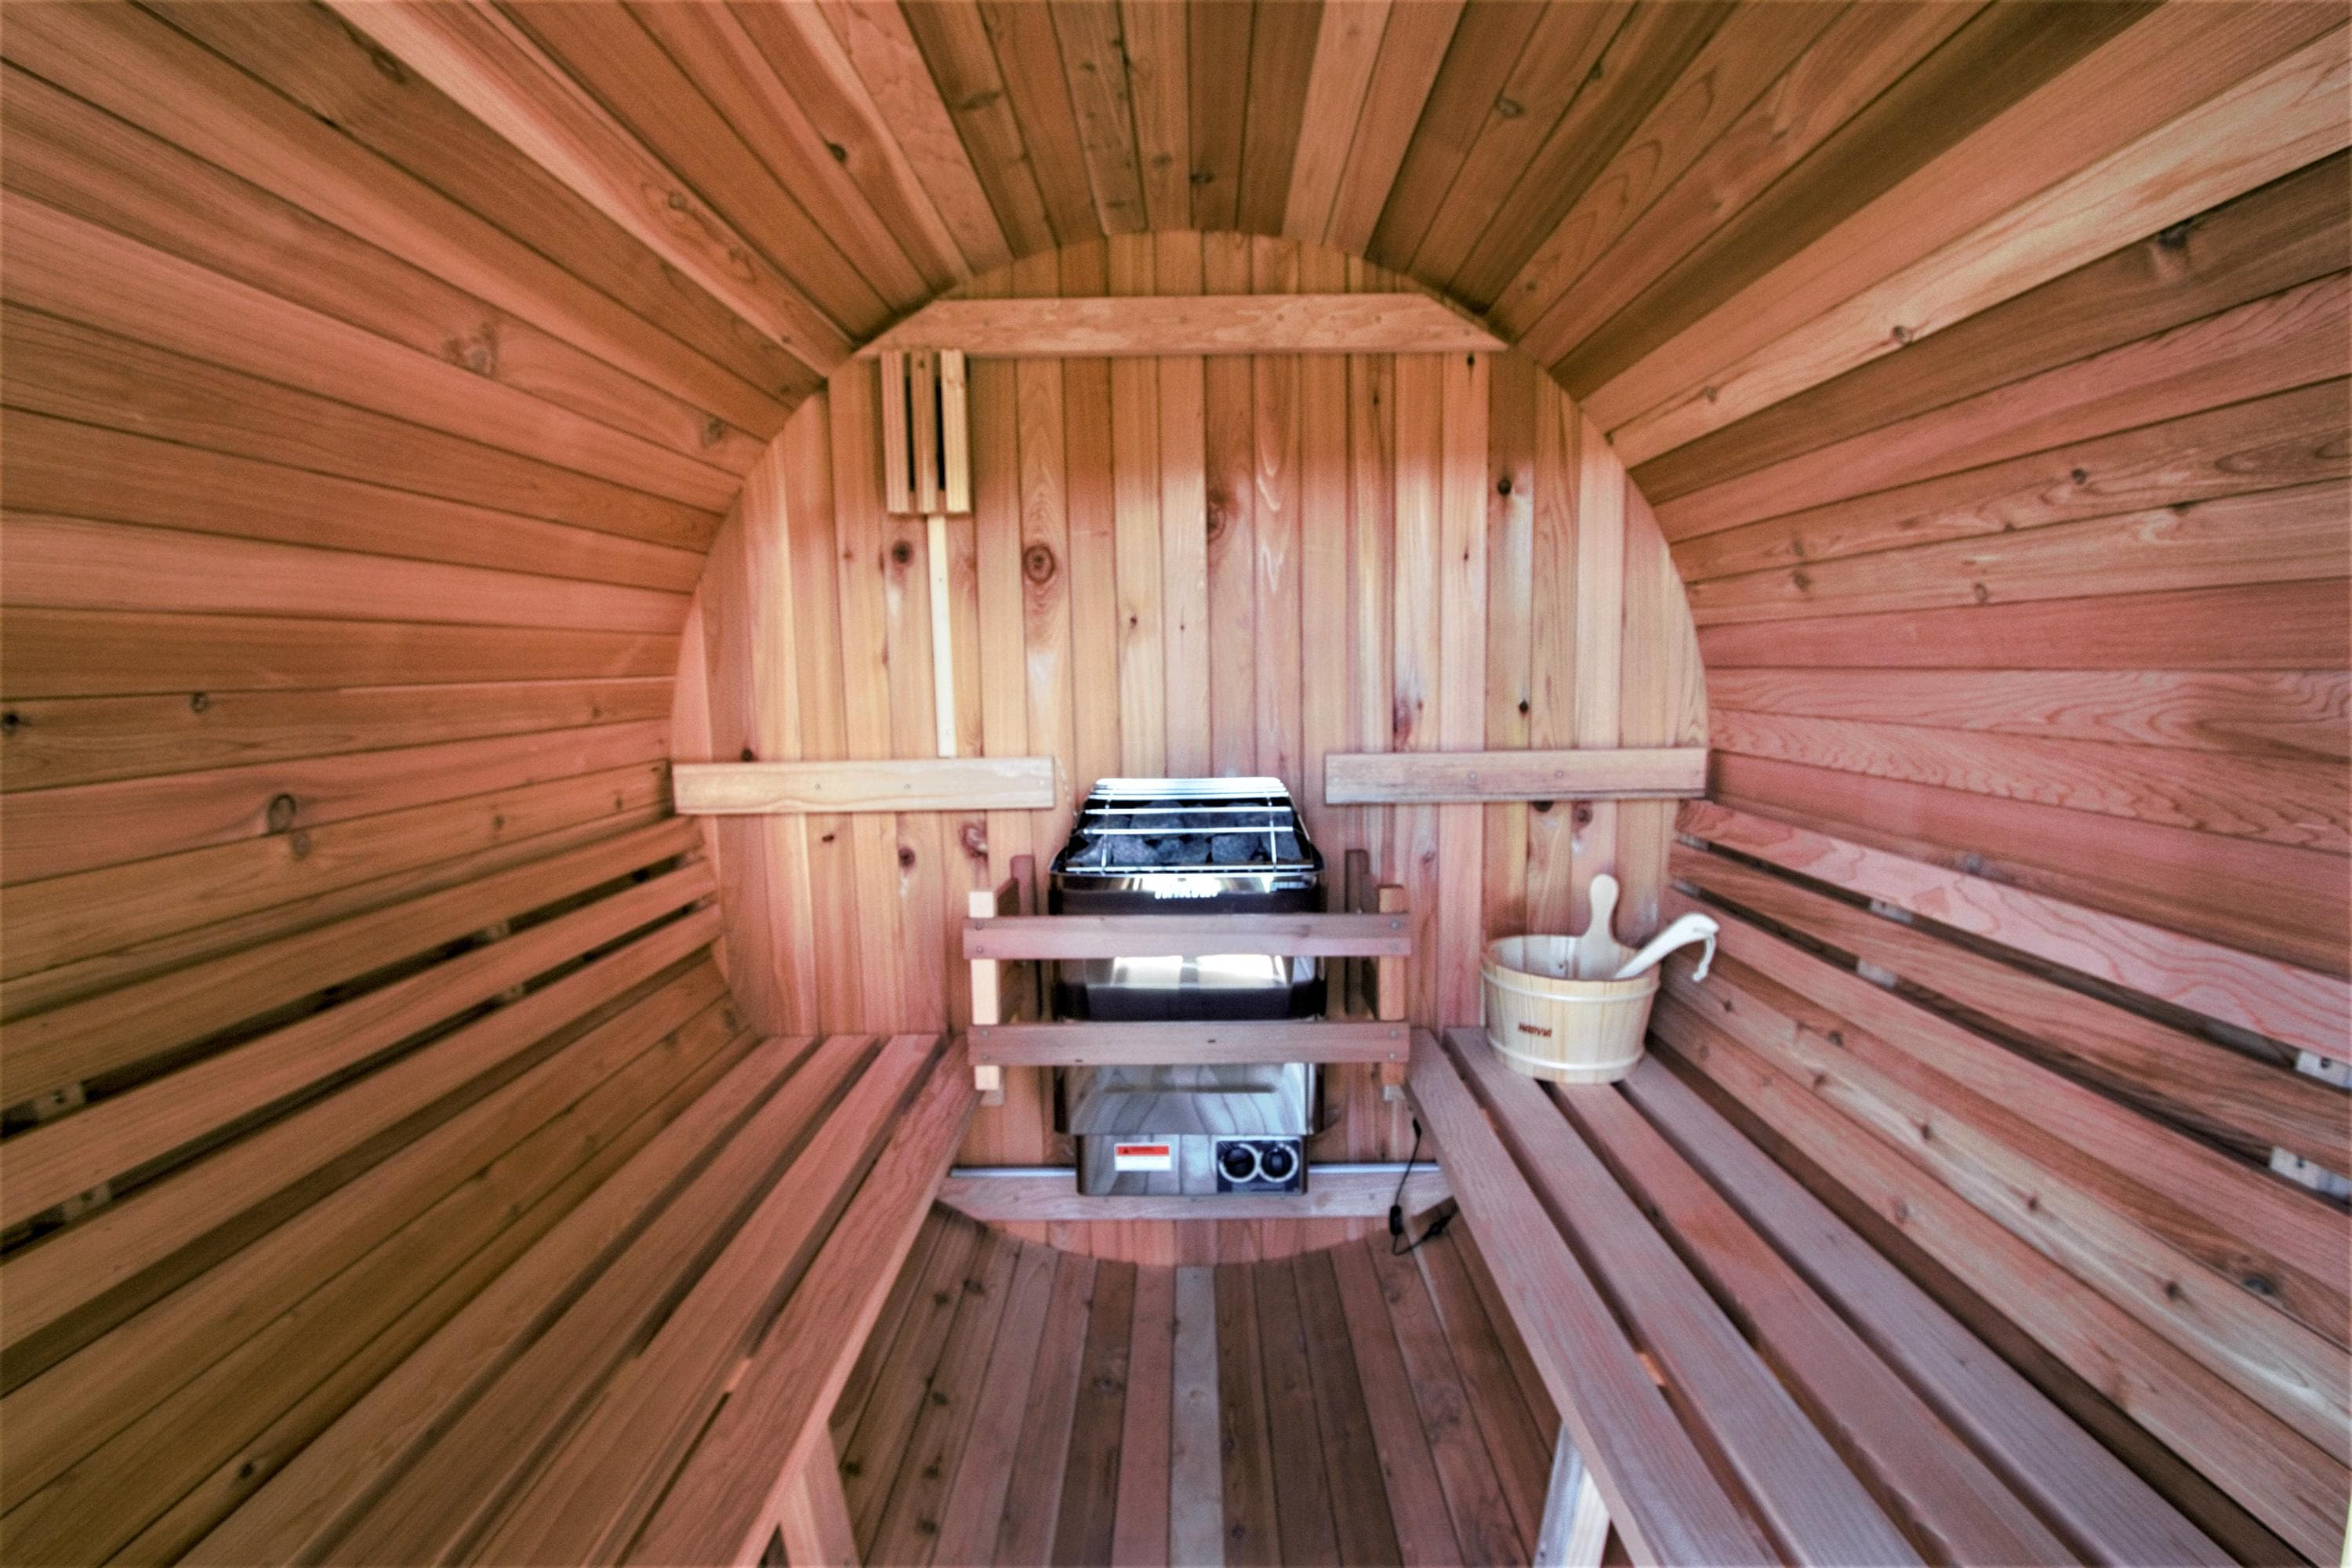 Sit back and unwind in the outdoor steam sauna.